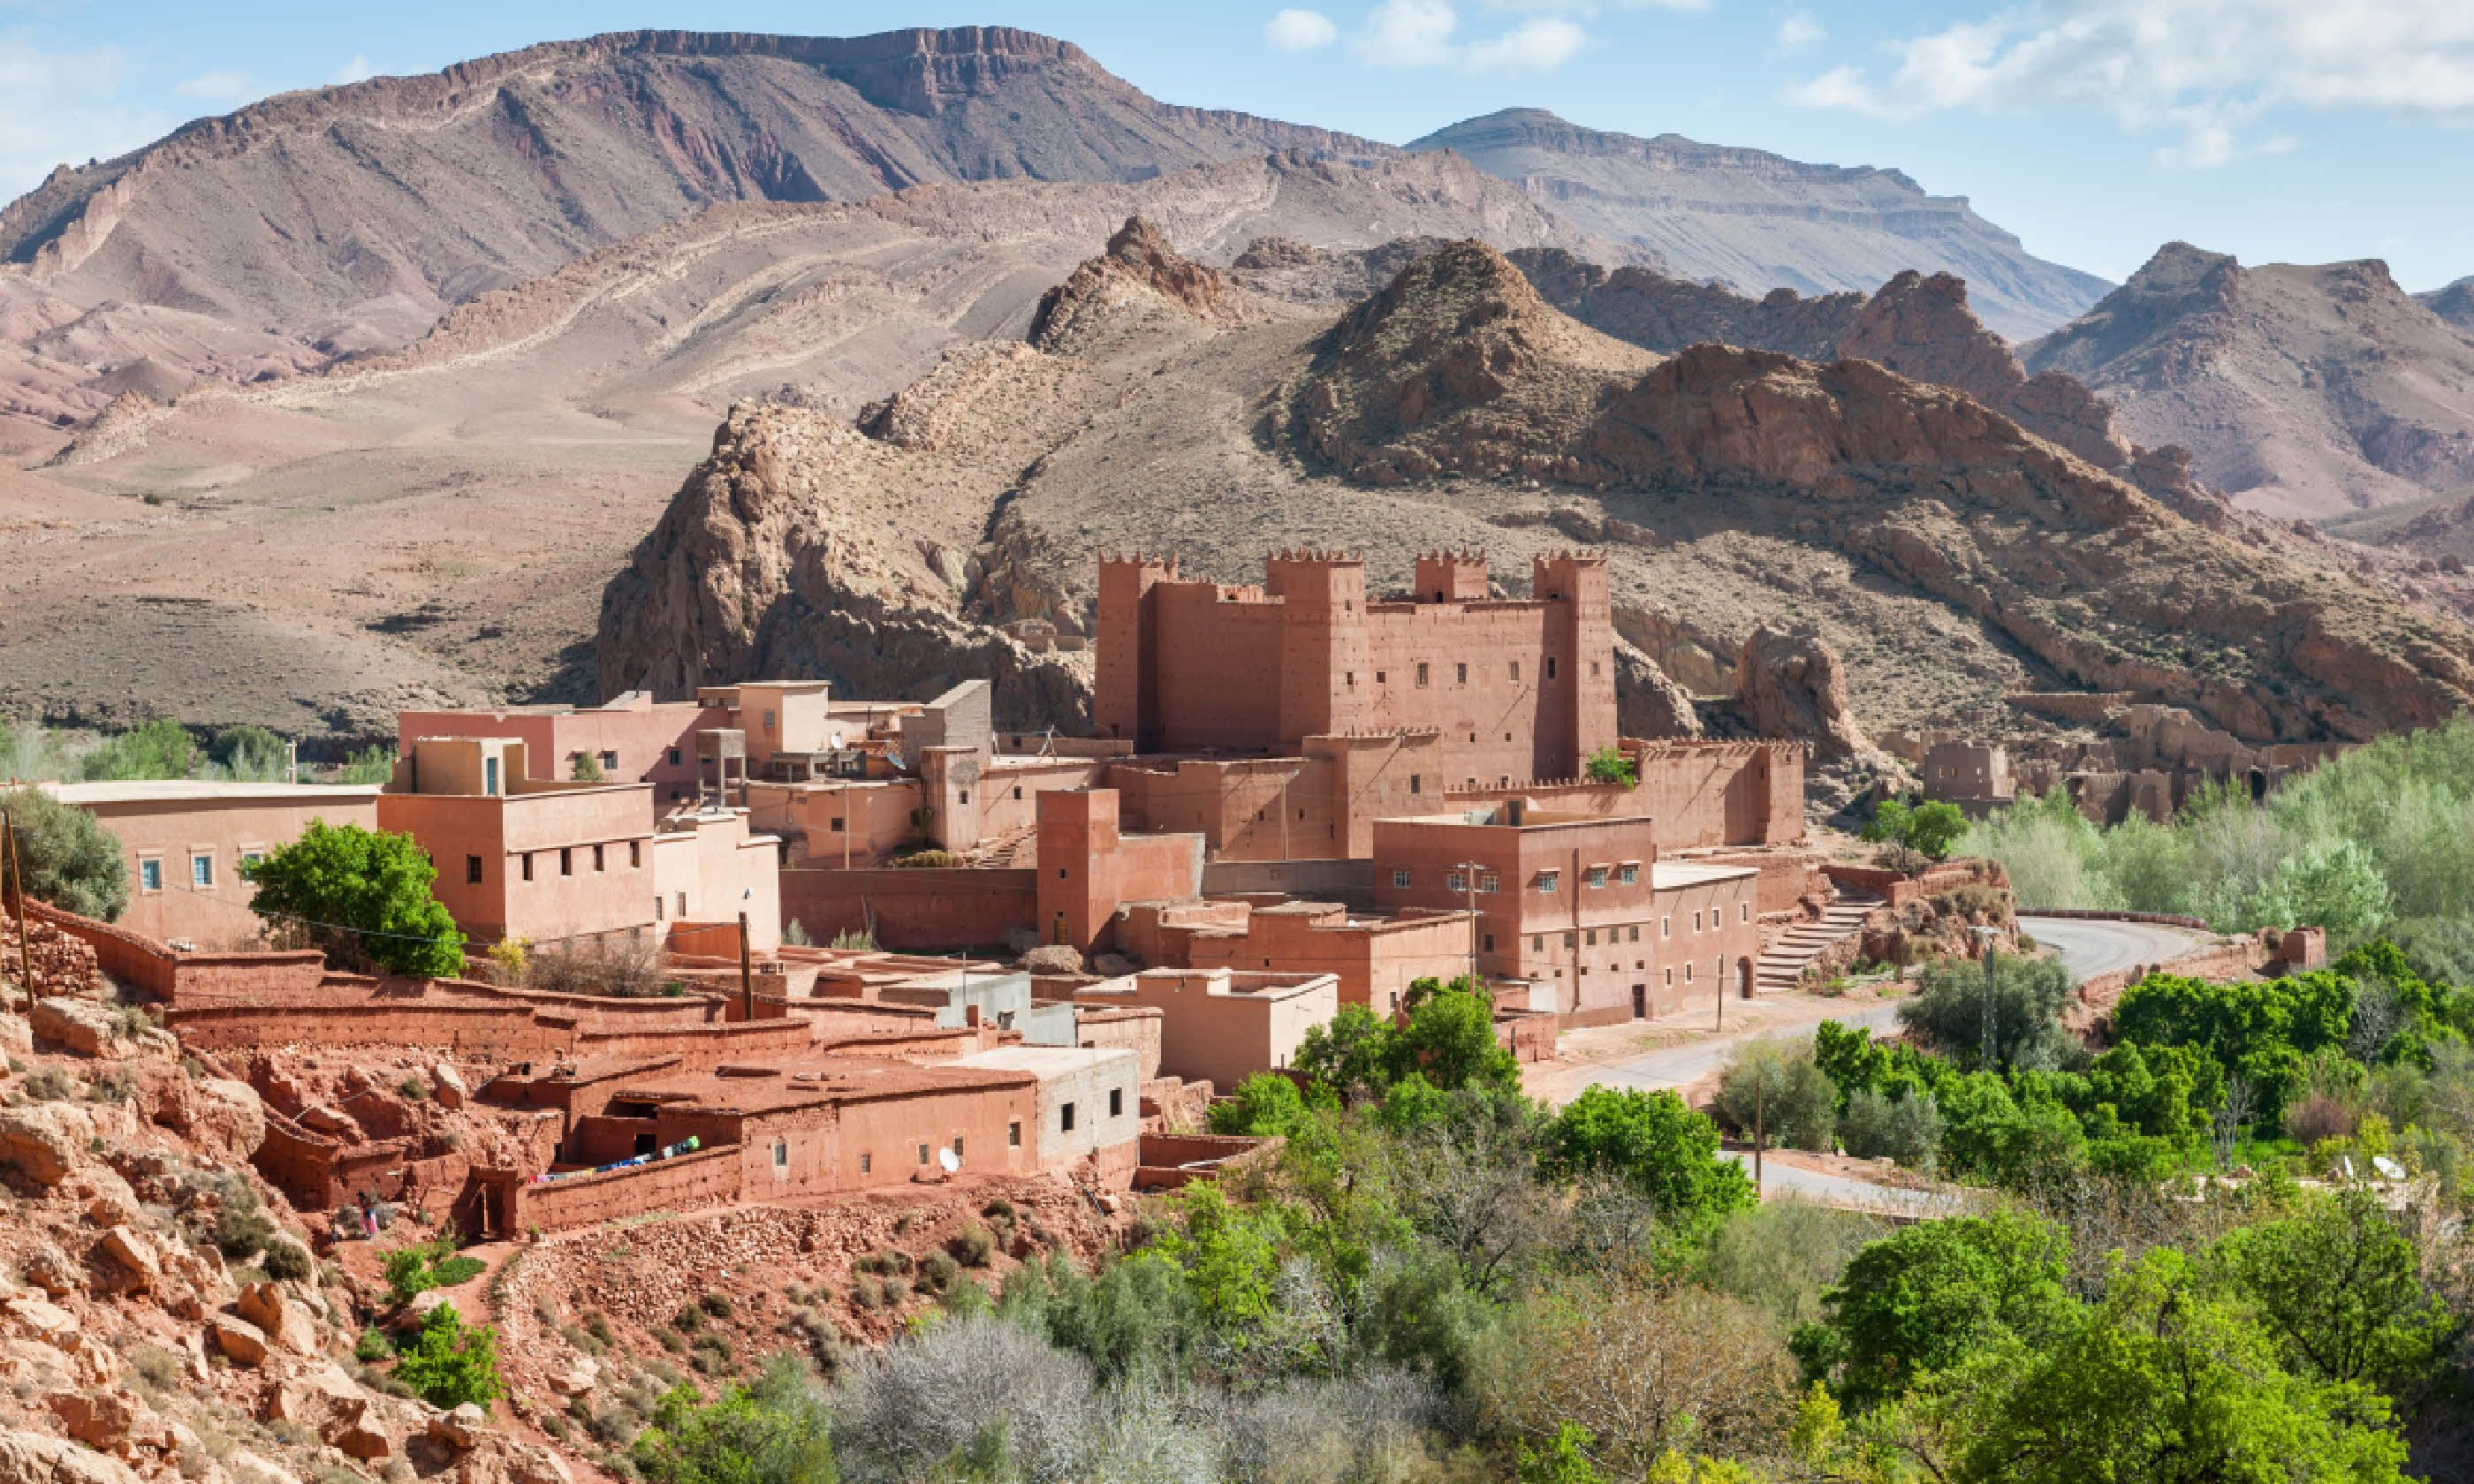 Village in Atlas Mountains, Morocco (Shutterstock)